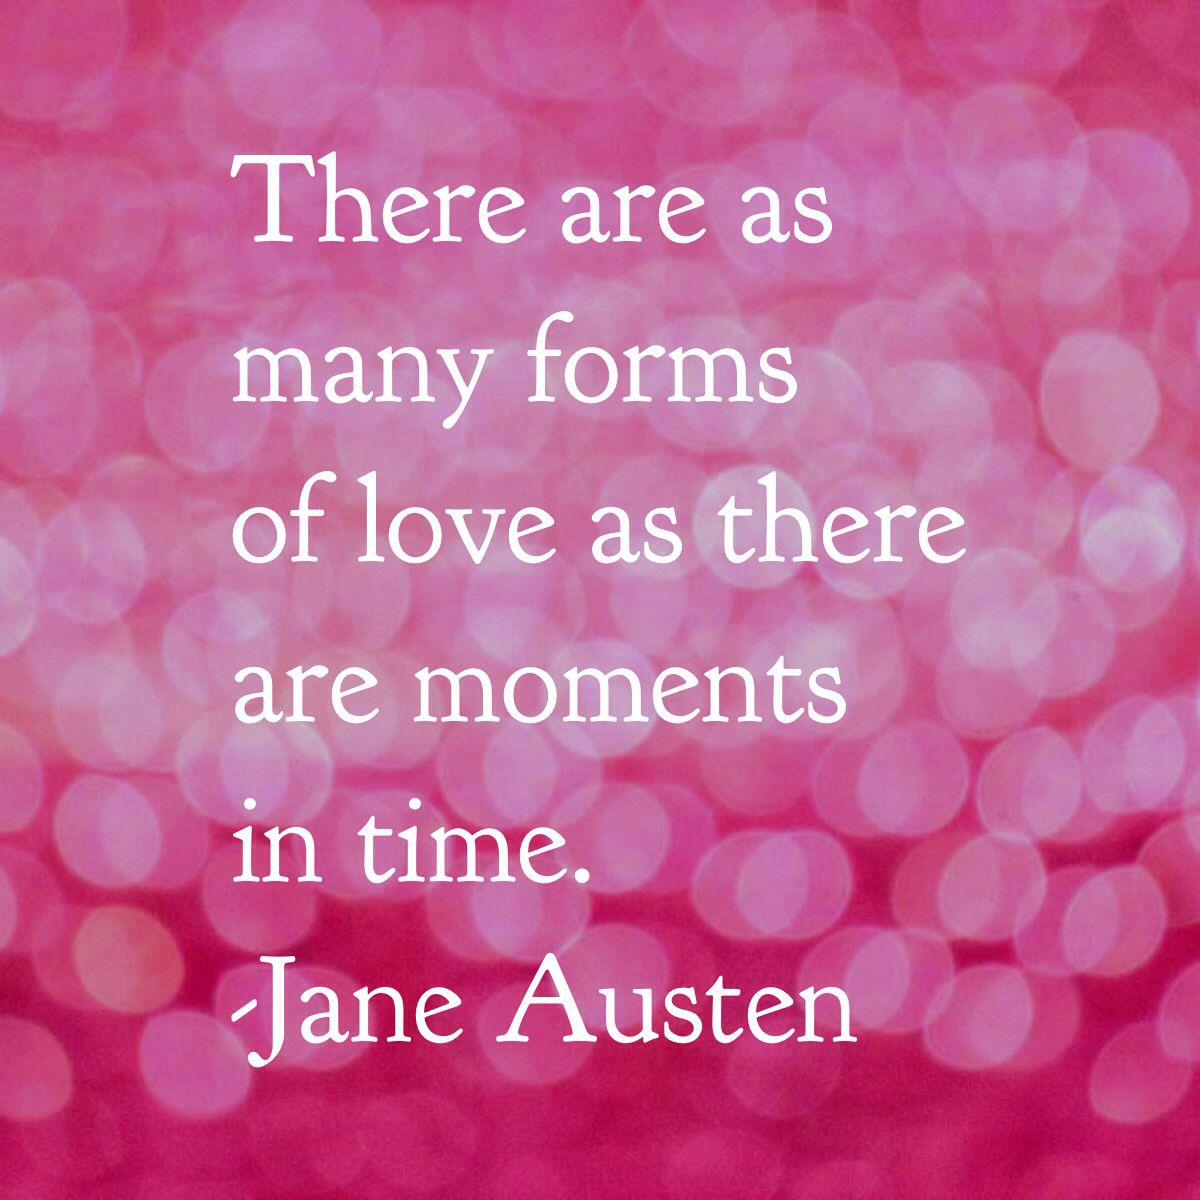 Love Images With Quotes Latest : Love Quotes From Jane Austen. QuotesGram